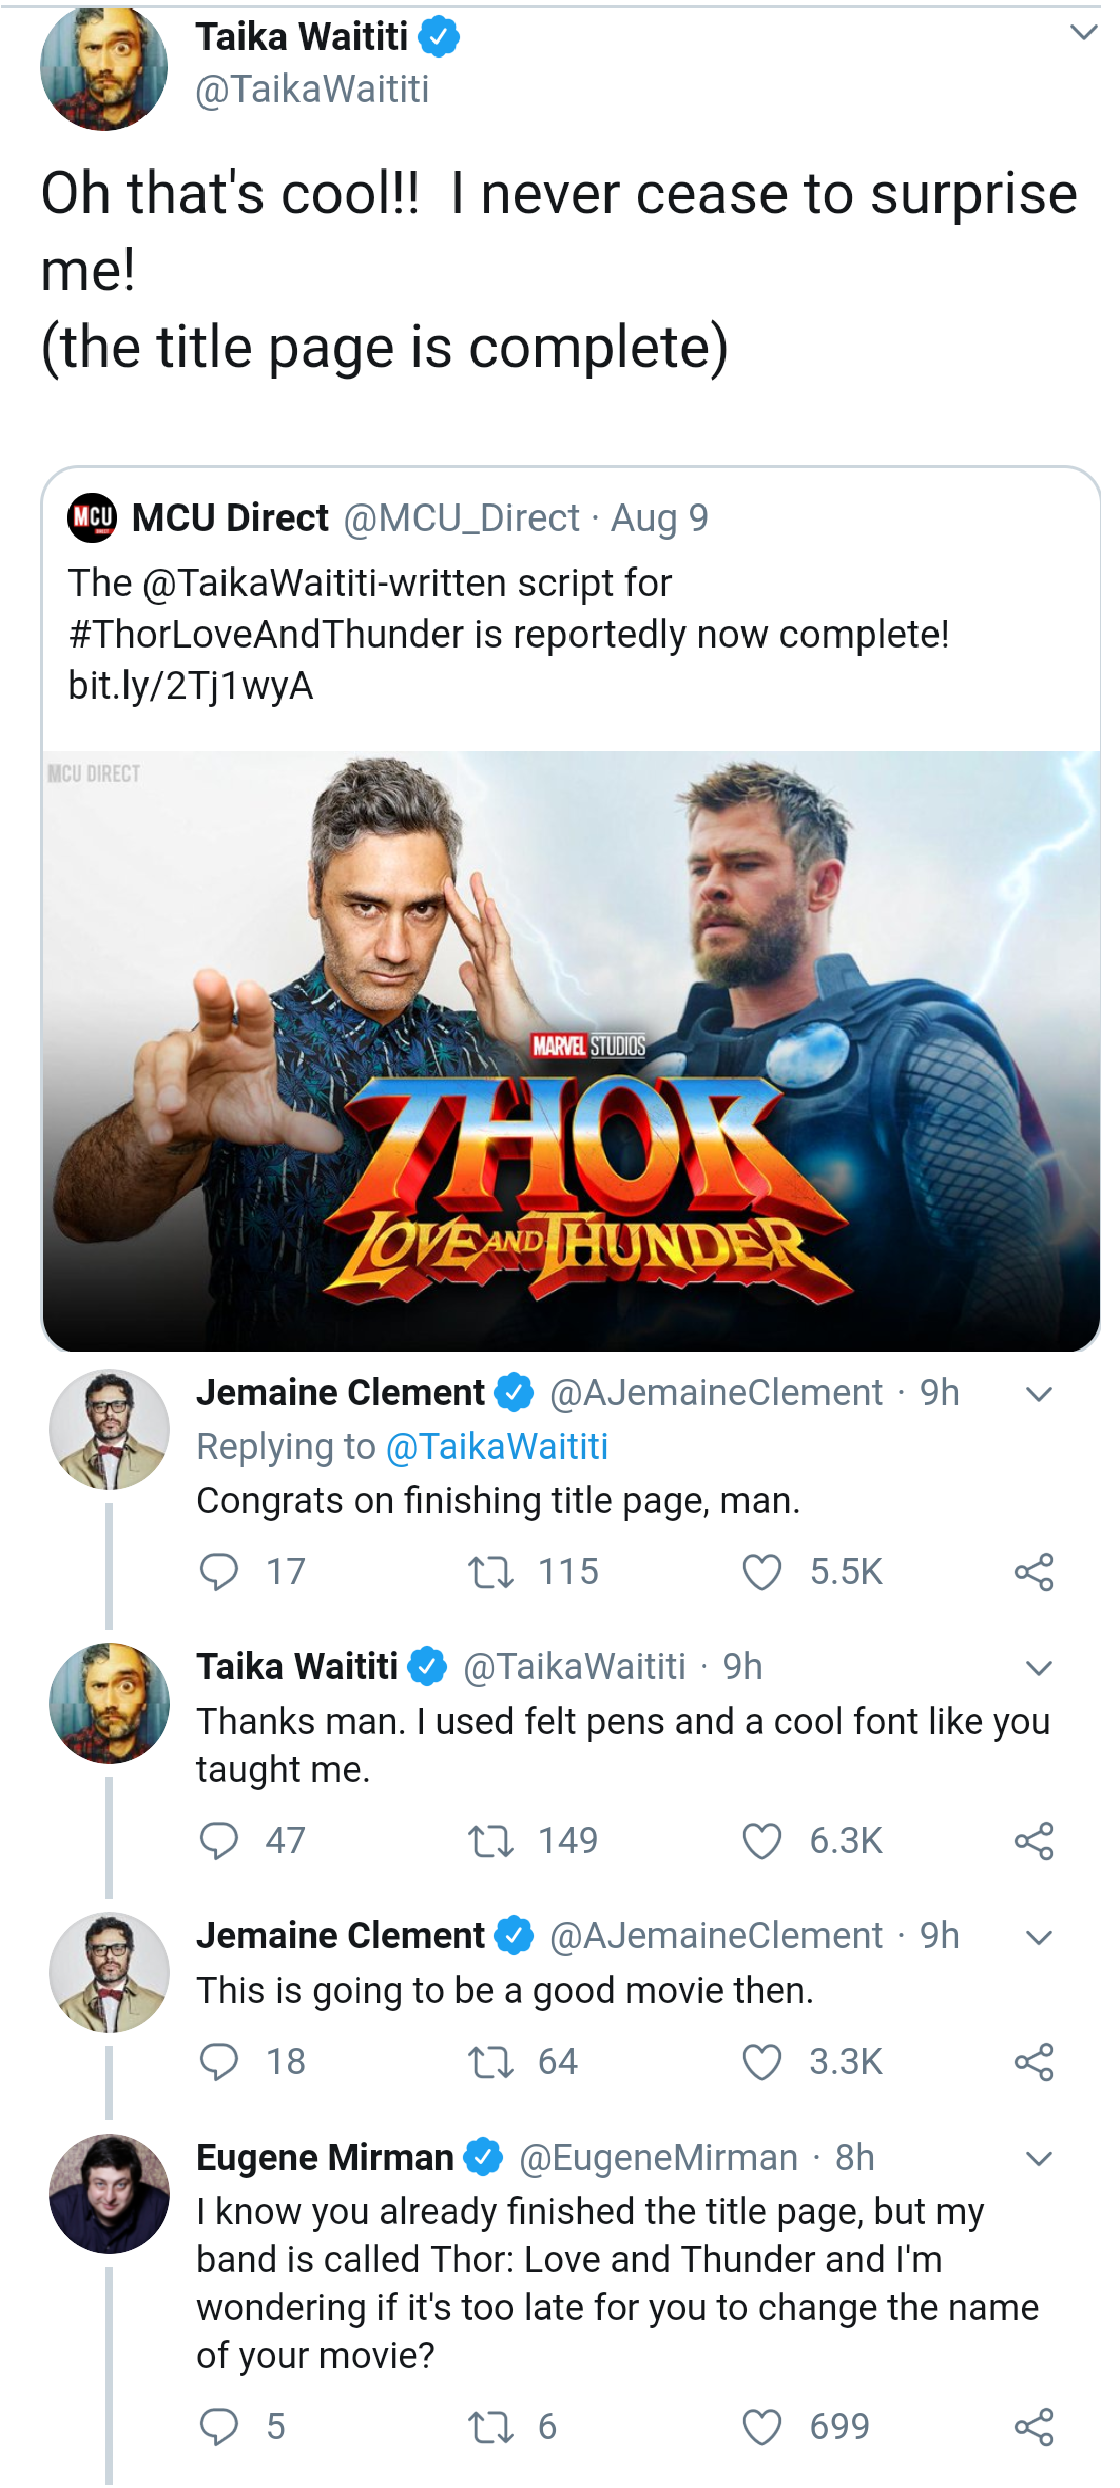 Taika Waititi And Jemaine Clement Discuess The Status Of Thor Love Amp Thunder S Scripthttps I Redd It 1z73ojniz9i31 Pn Jemaine Clement Taika Waititi Thor